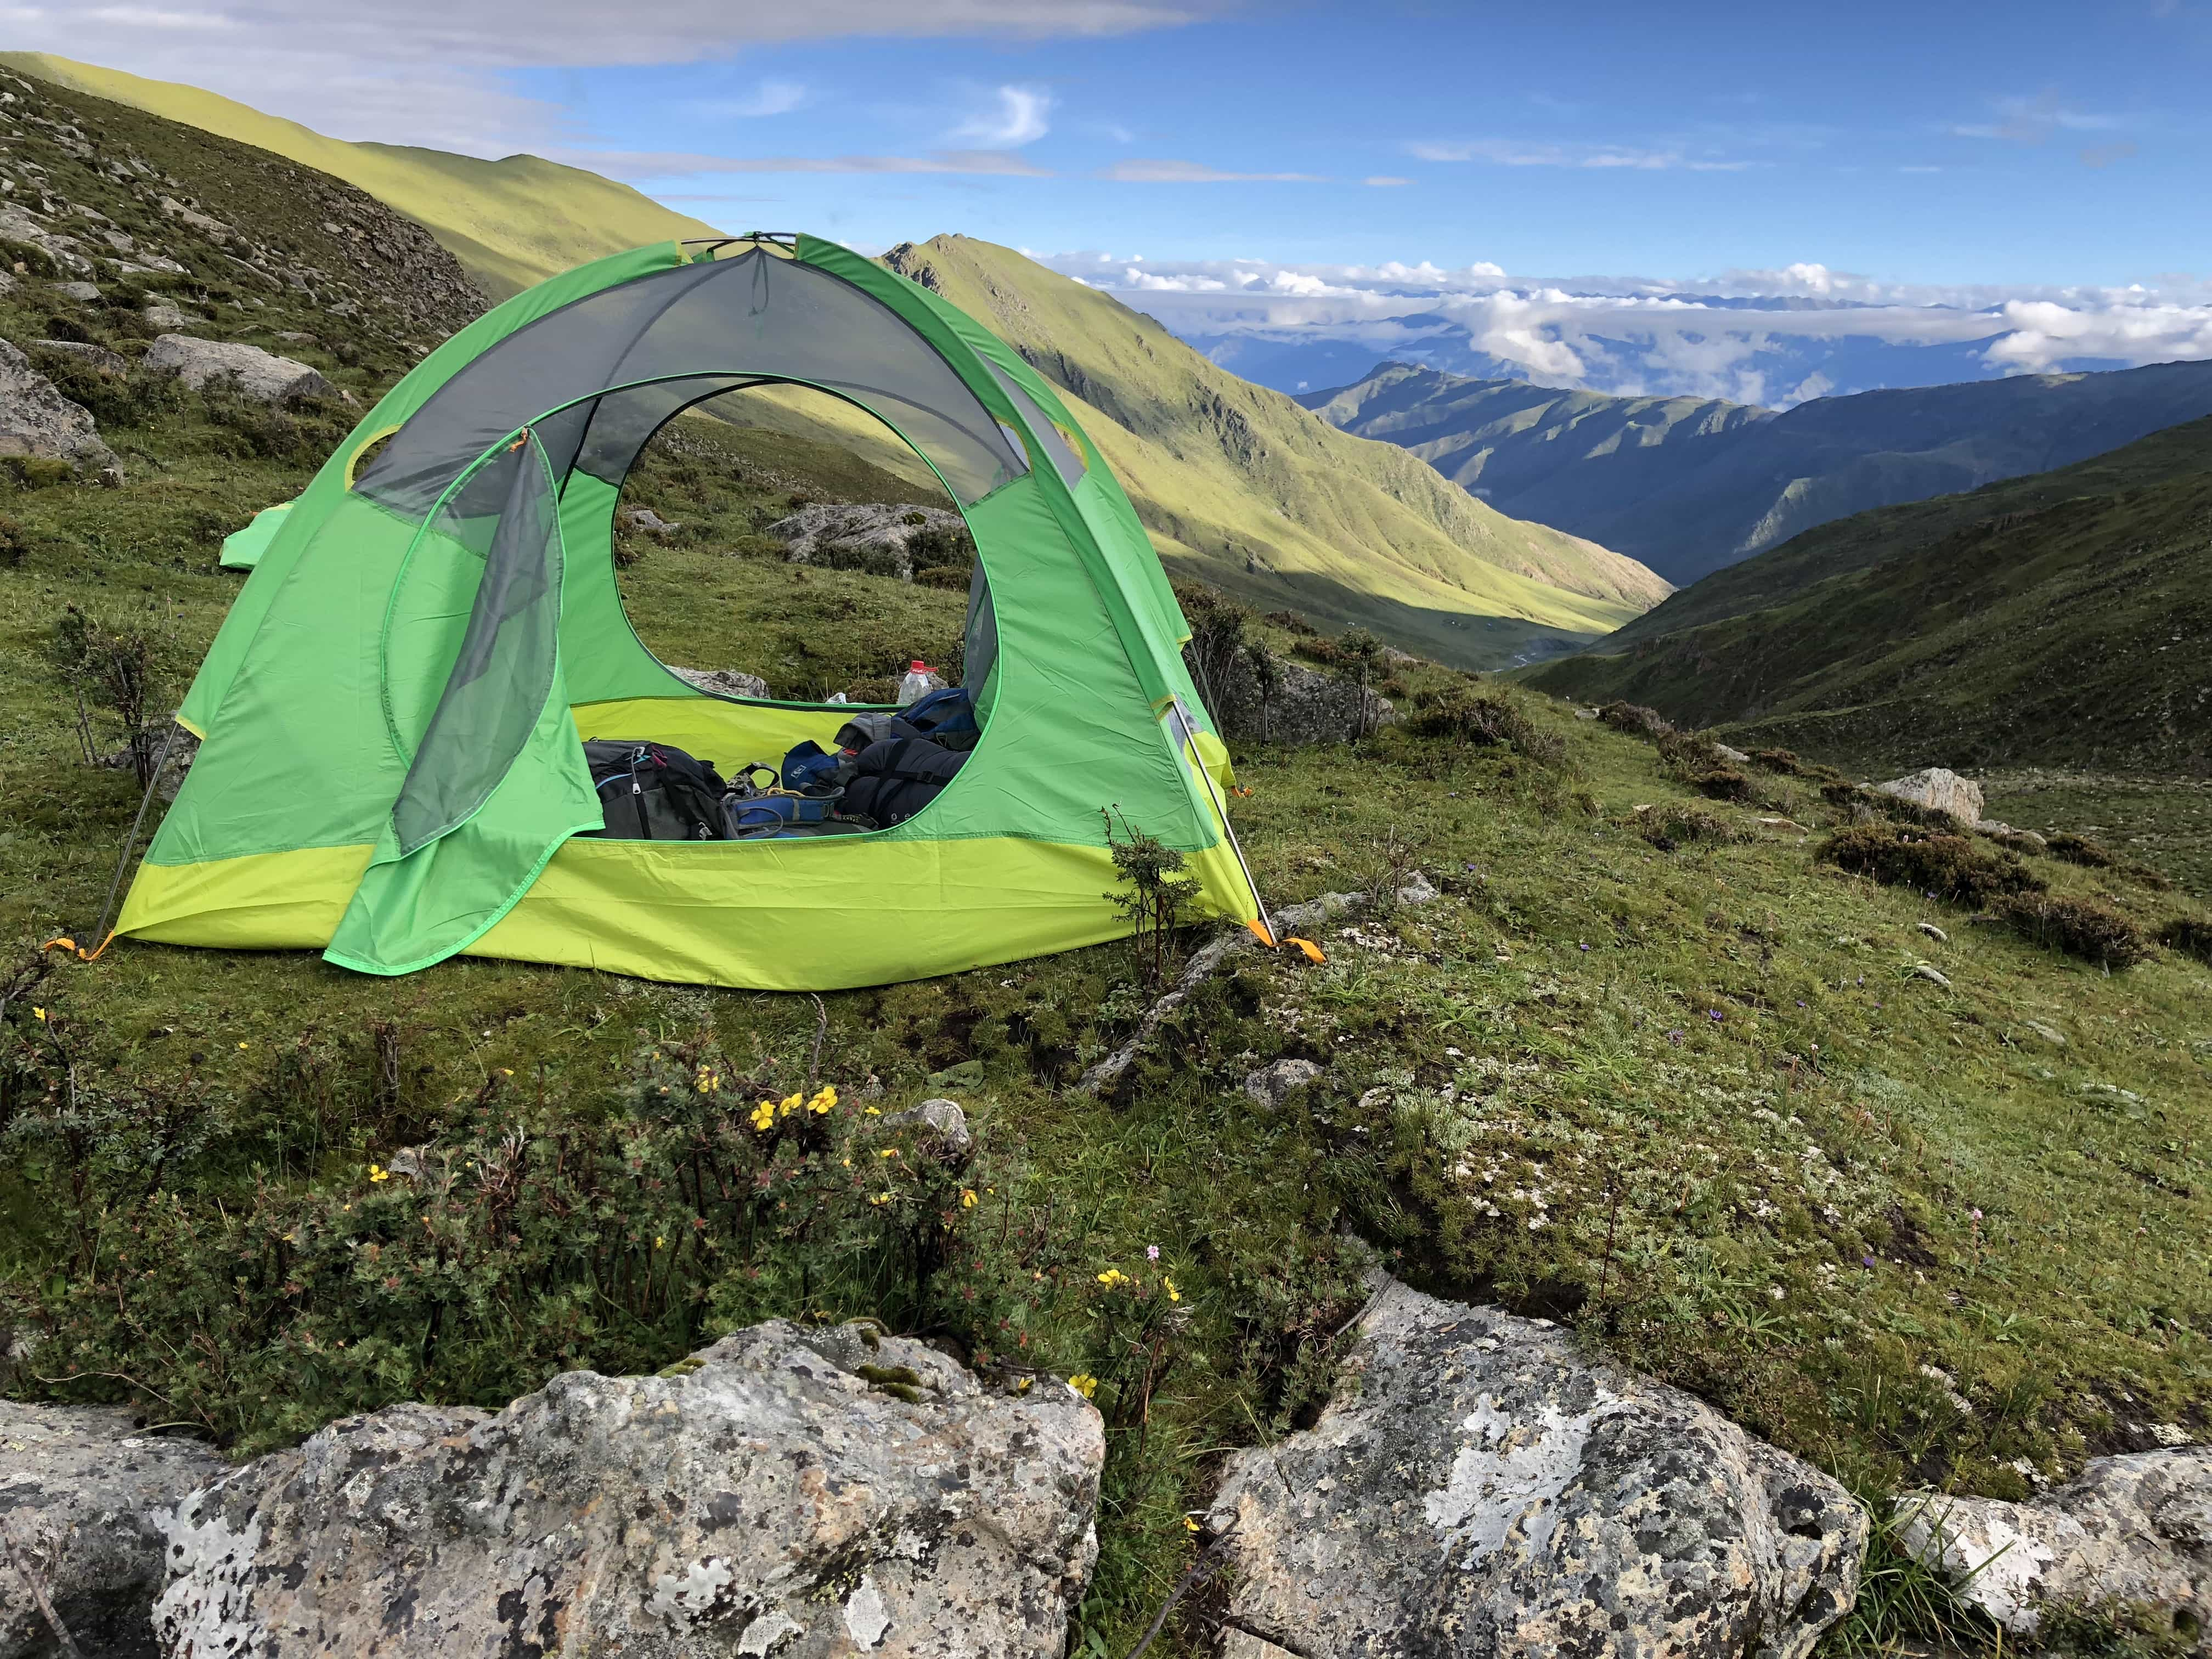 Tent set up at 5000 meters trekking and camping in Tibet